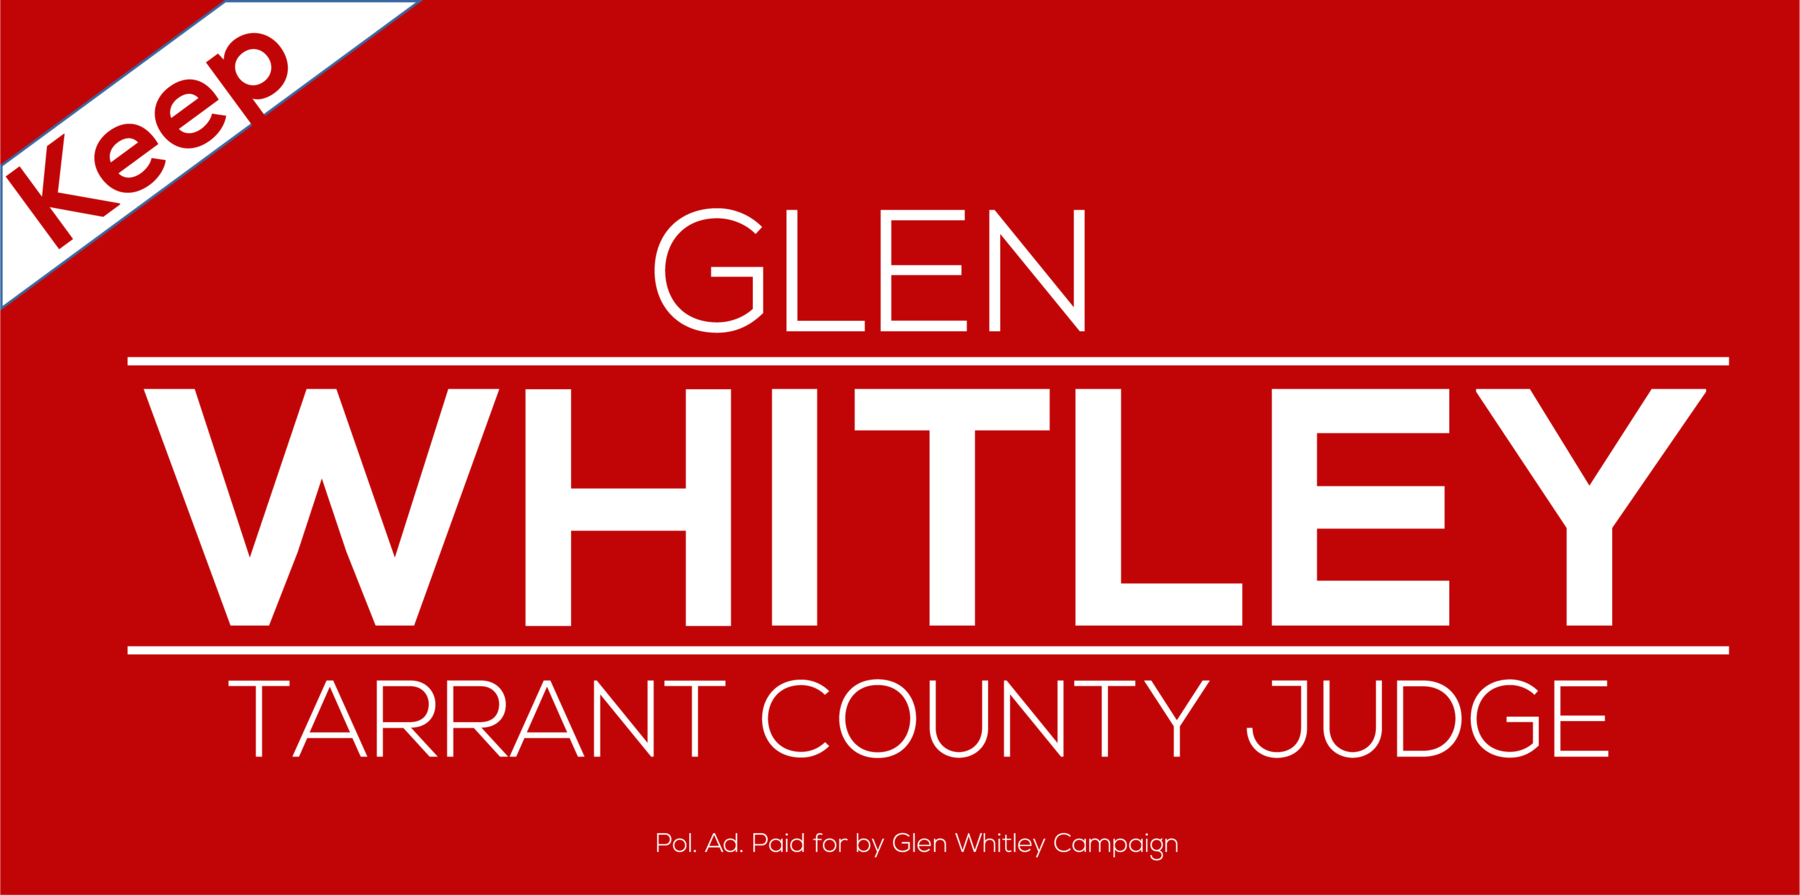 B Glen Whitley Campaign: Judge B Glen Whitley Campaign